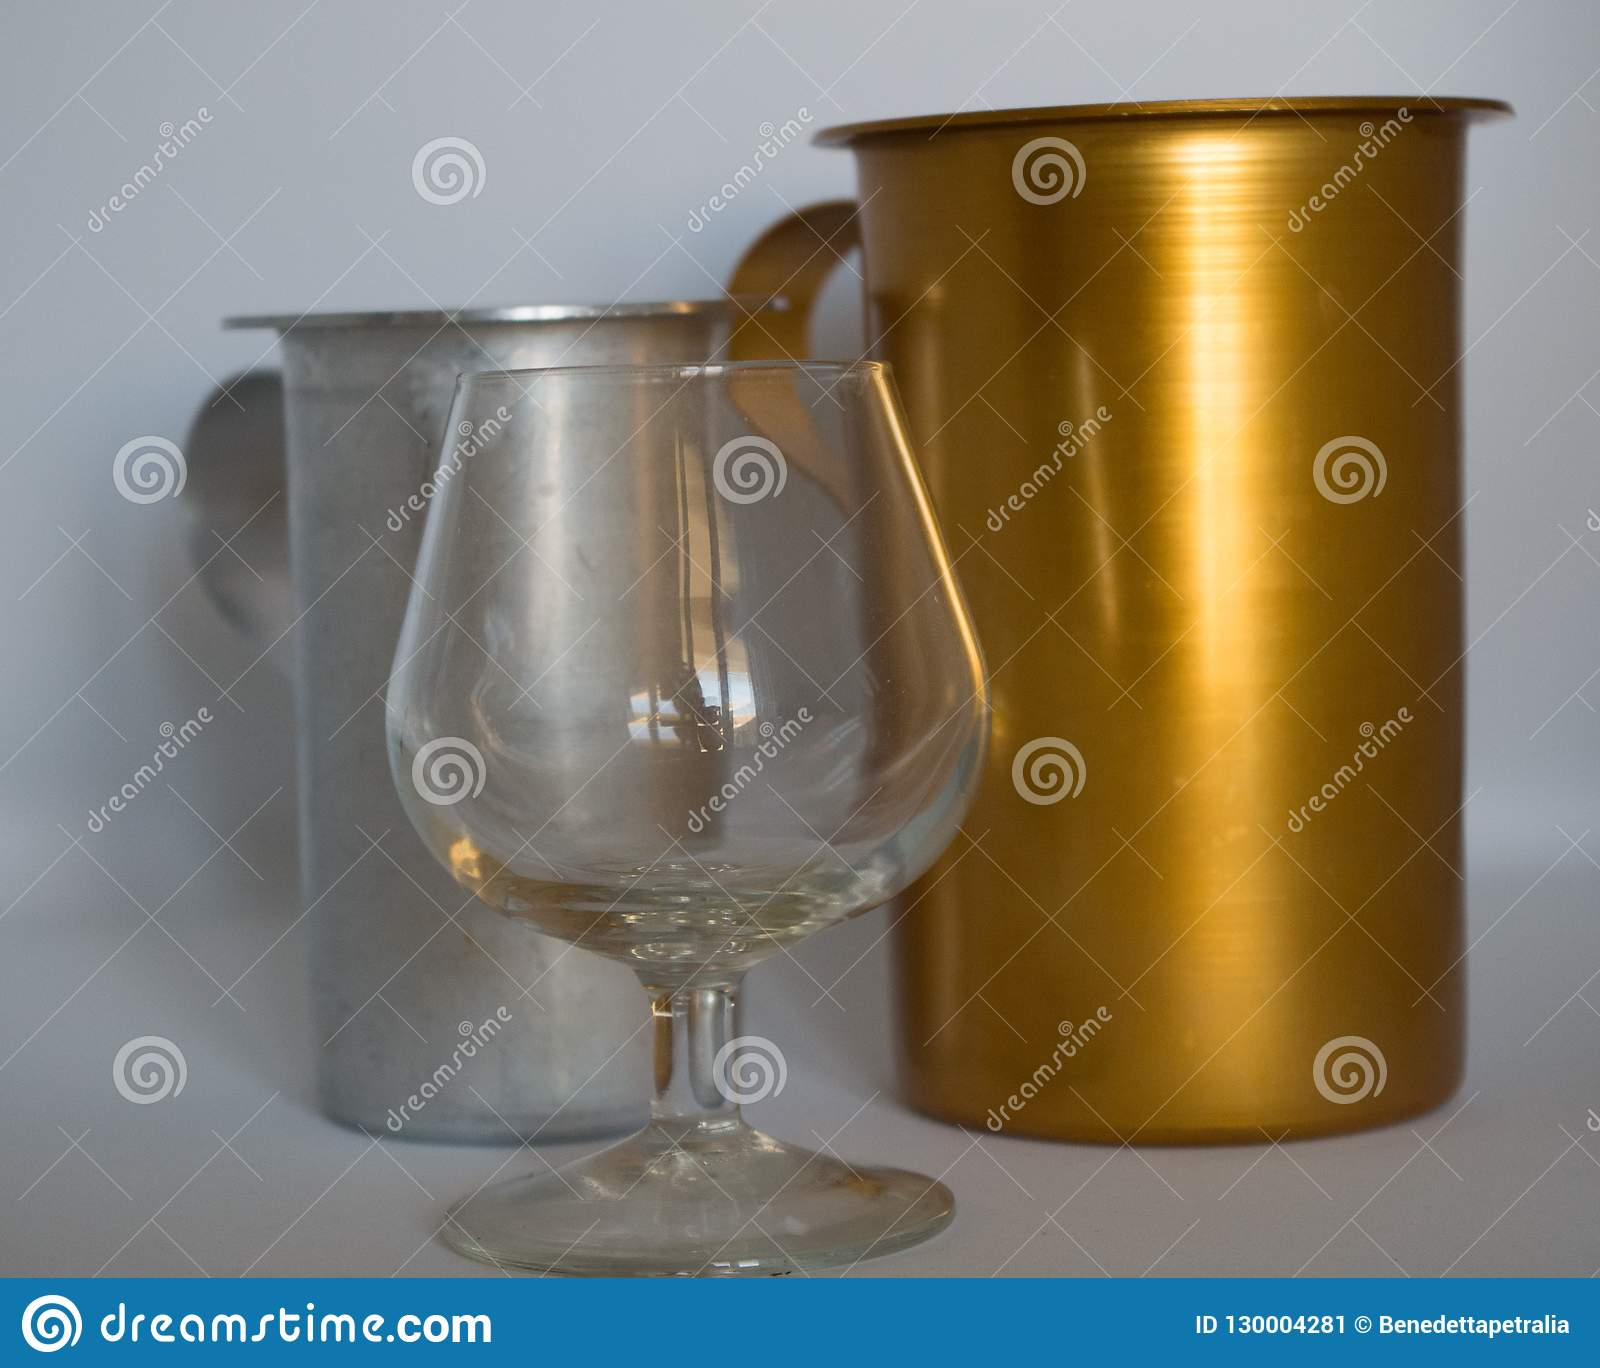 Golden and silvery pitcher with cognac glass empty on white background